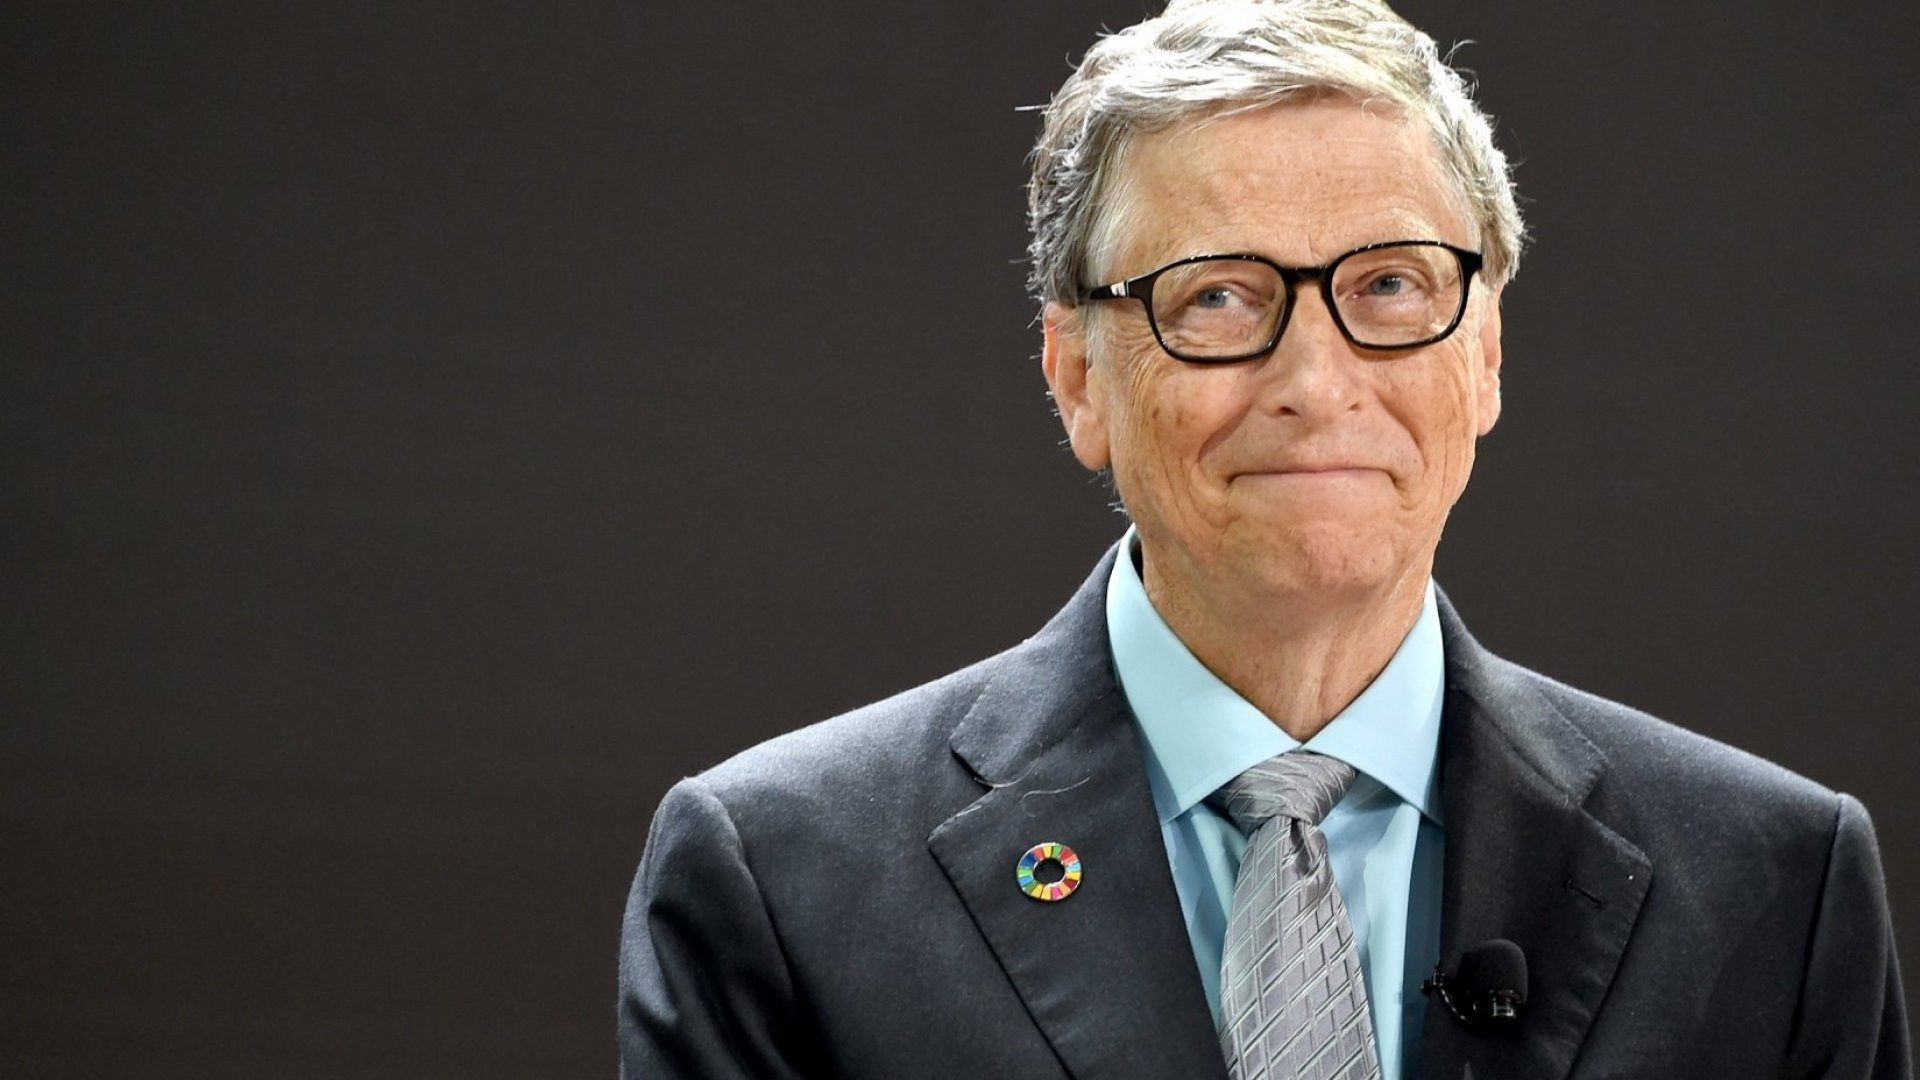 Bill Gates Just Named His Biggest Tech Mistake Ever. He Is Totally Wrong About It